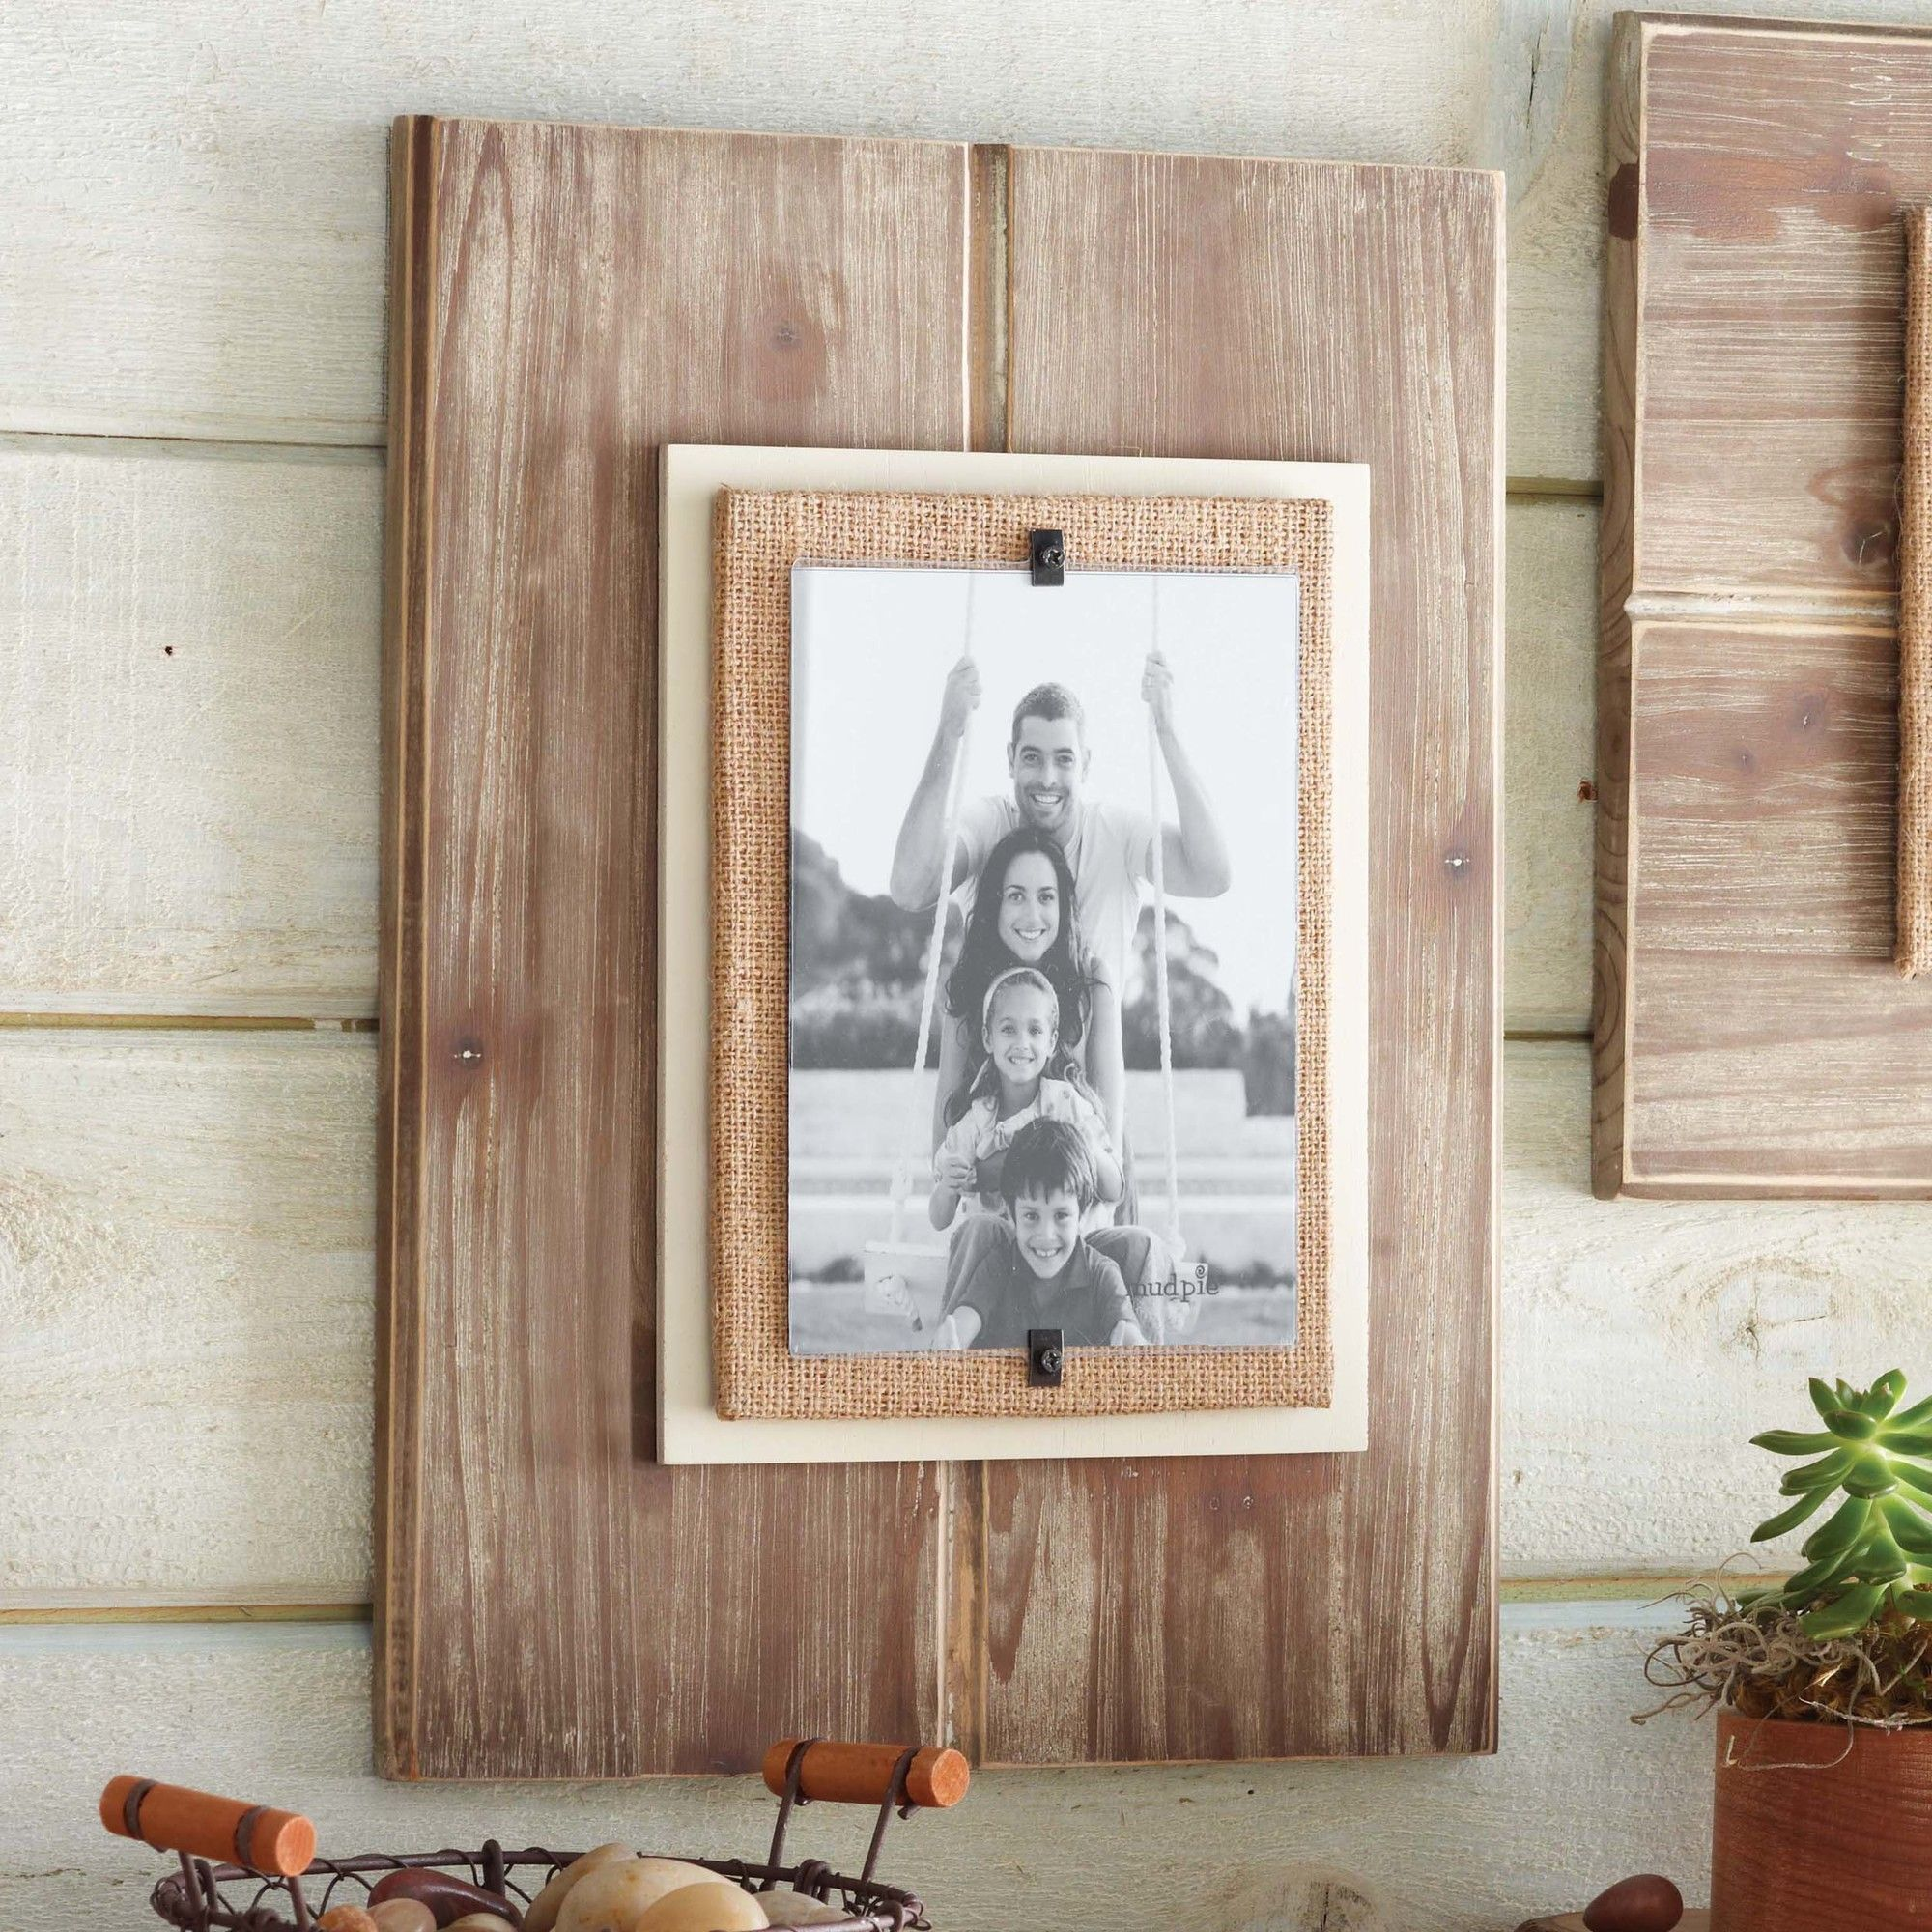 distressed wood picture frames diy features distressed wood frame with burlap and painted matting style countrycottage color burlap material wood theme family